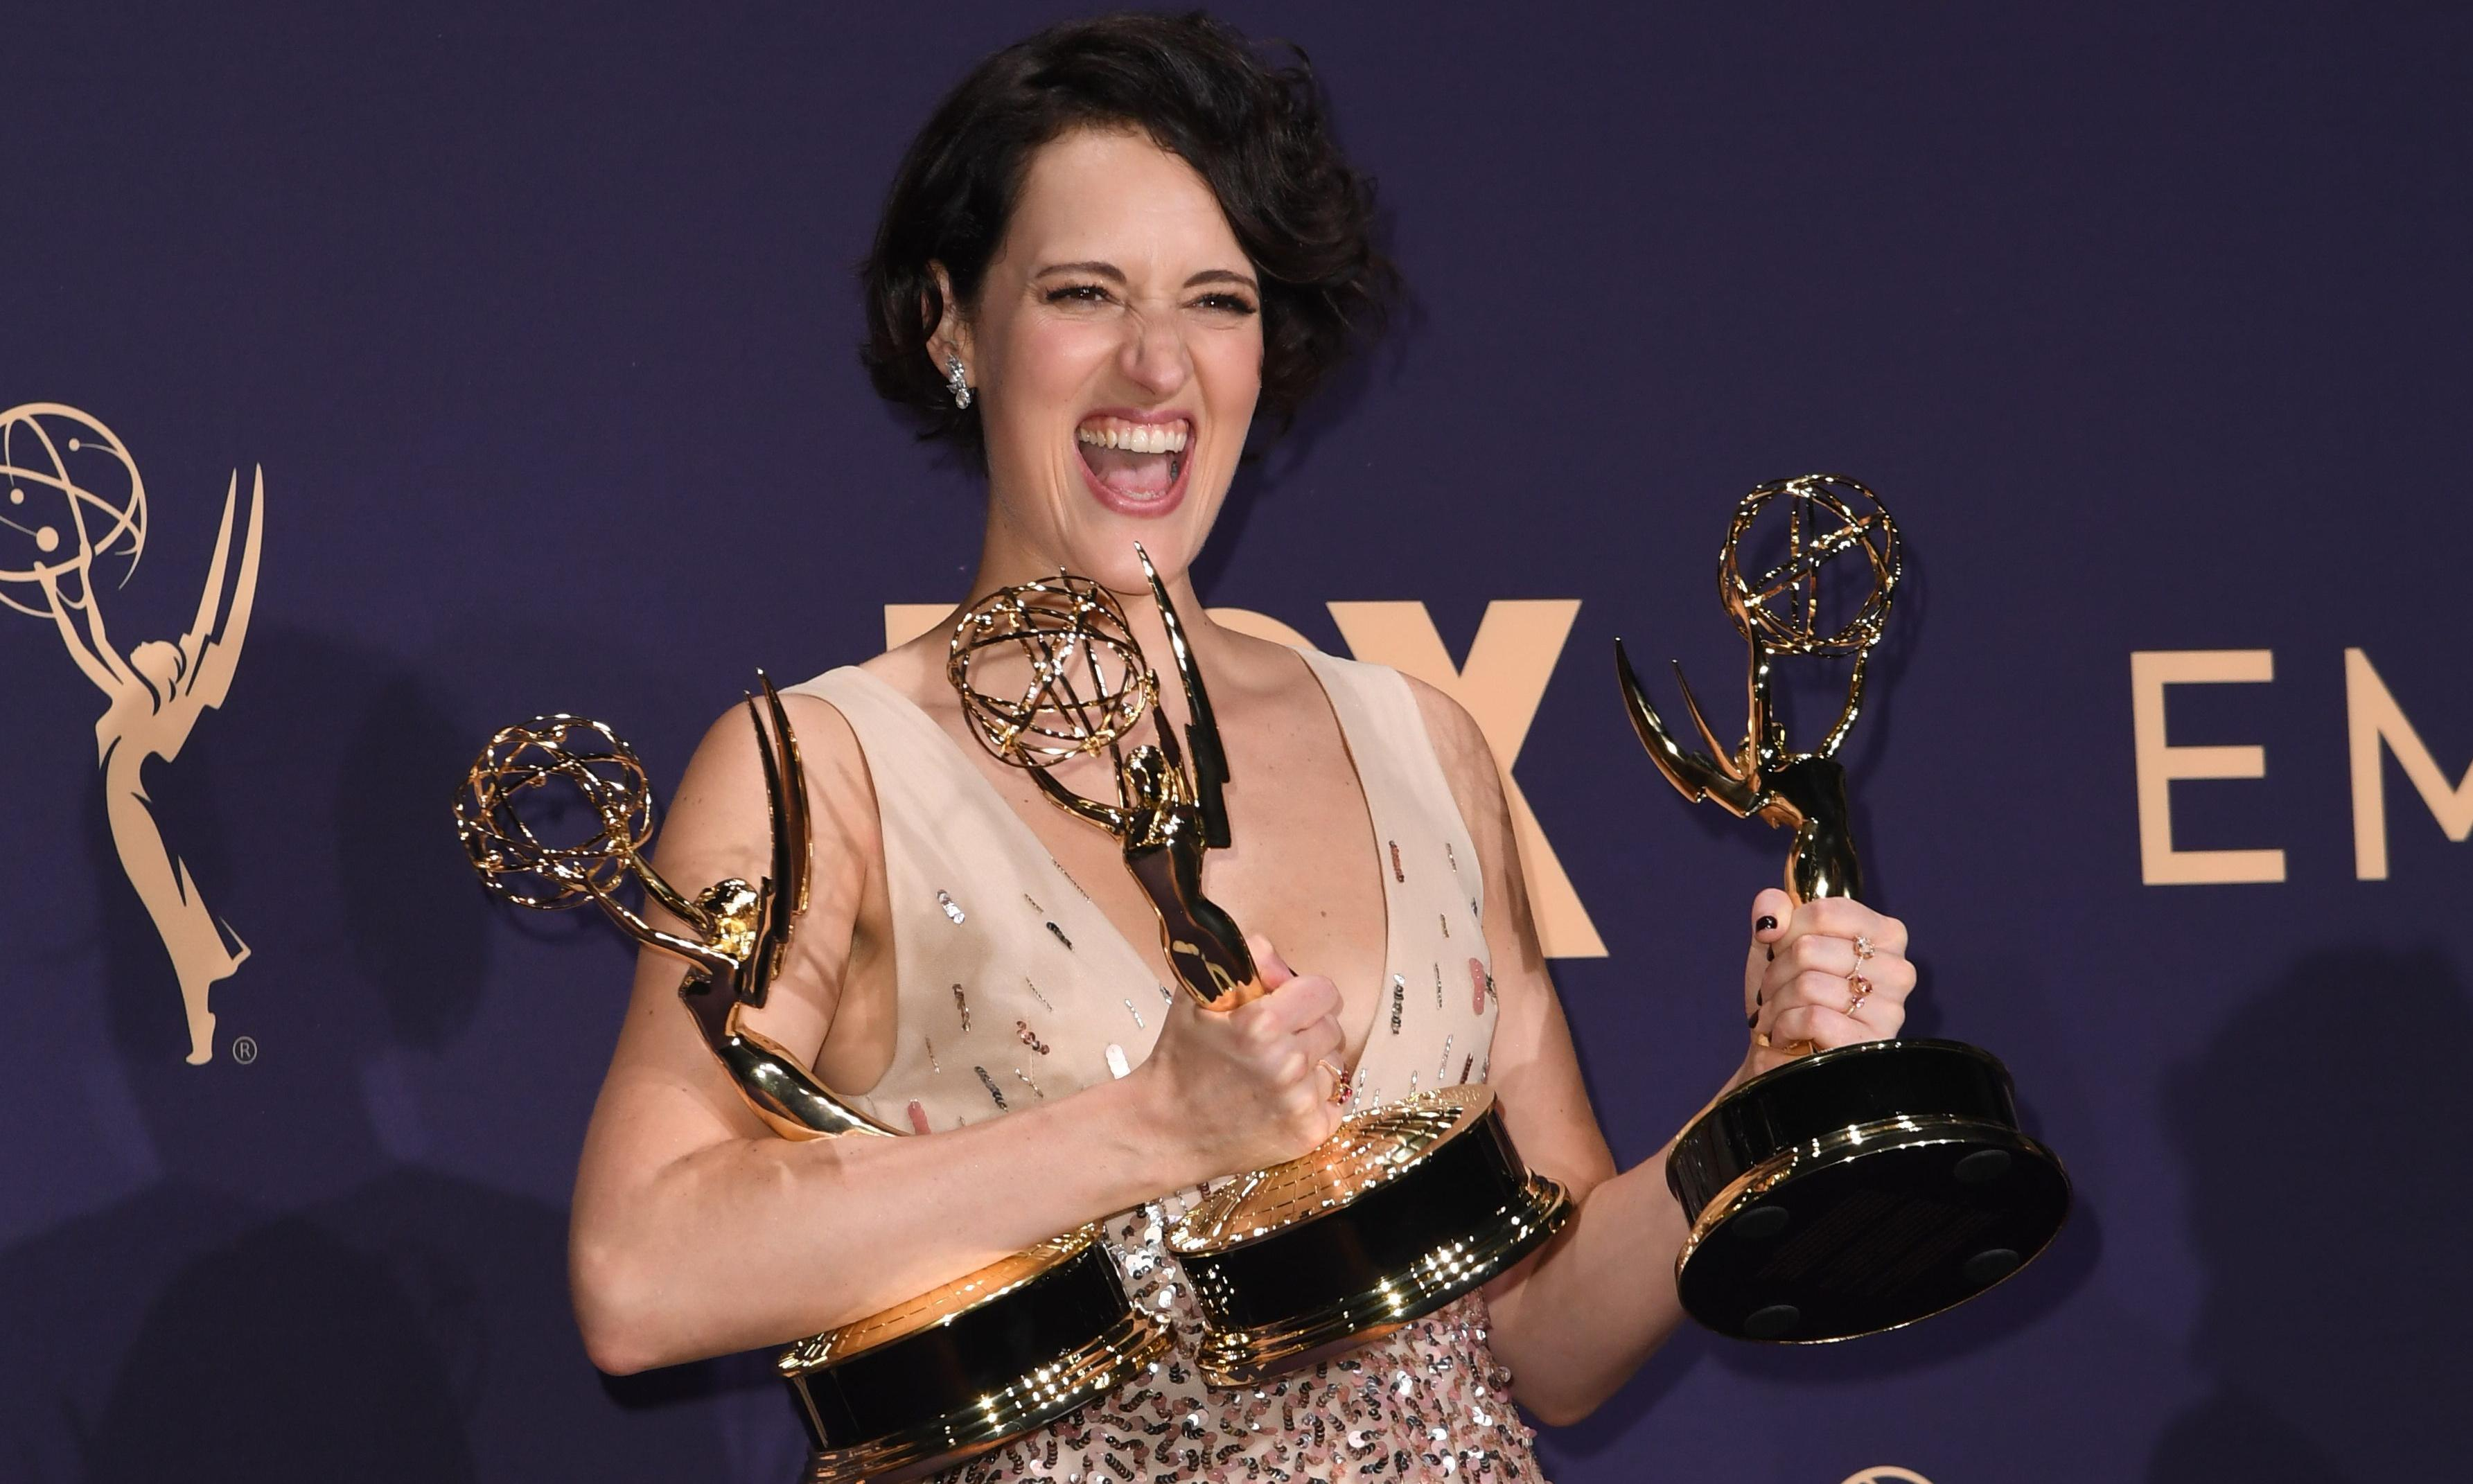 Today the world belongs to Fleabag! For once, the Emmys didn't mess up